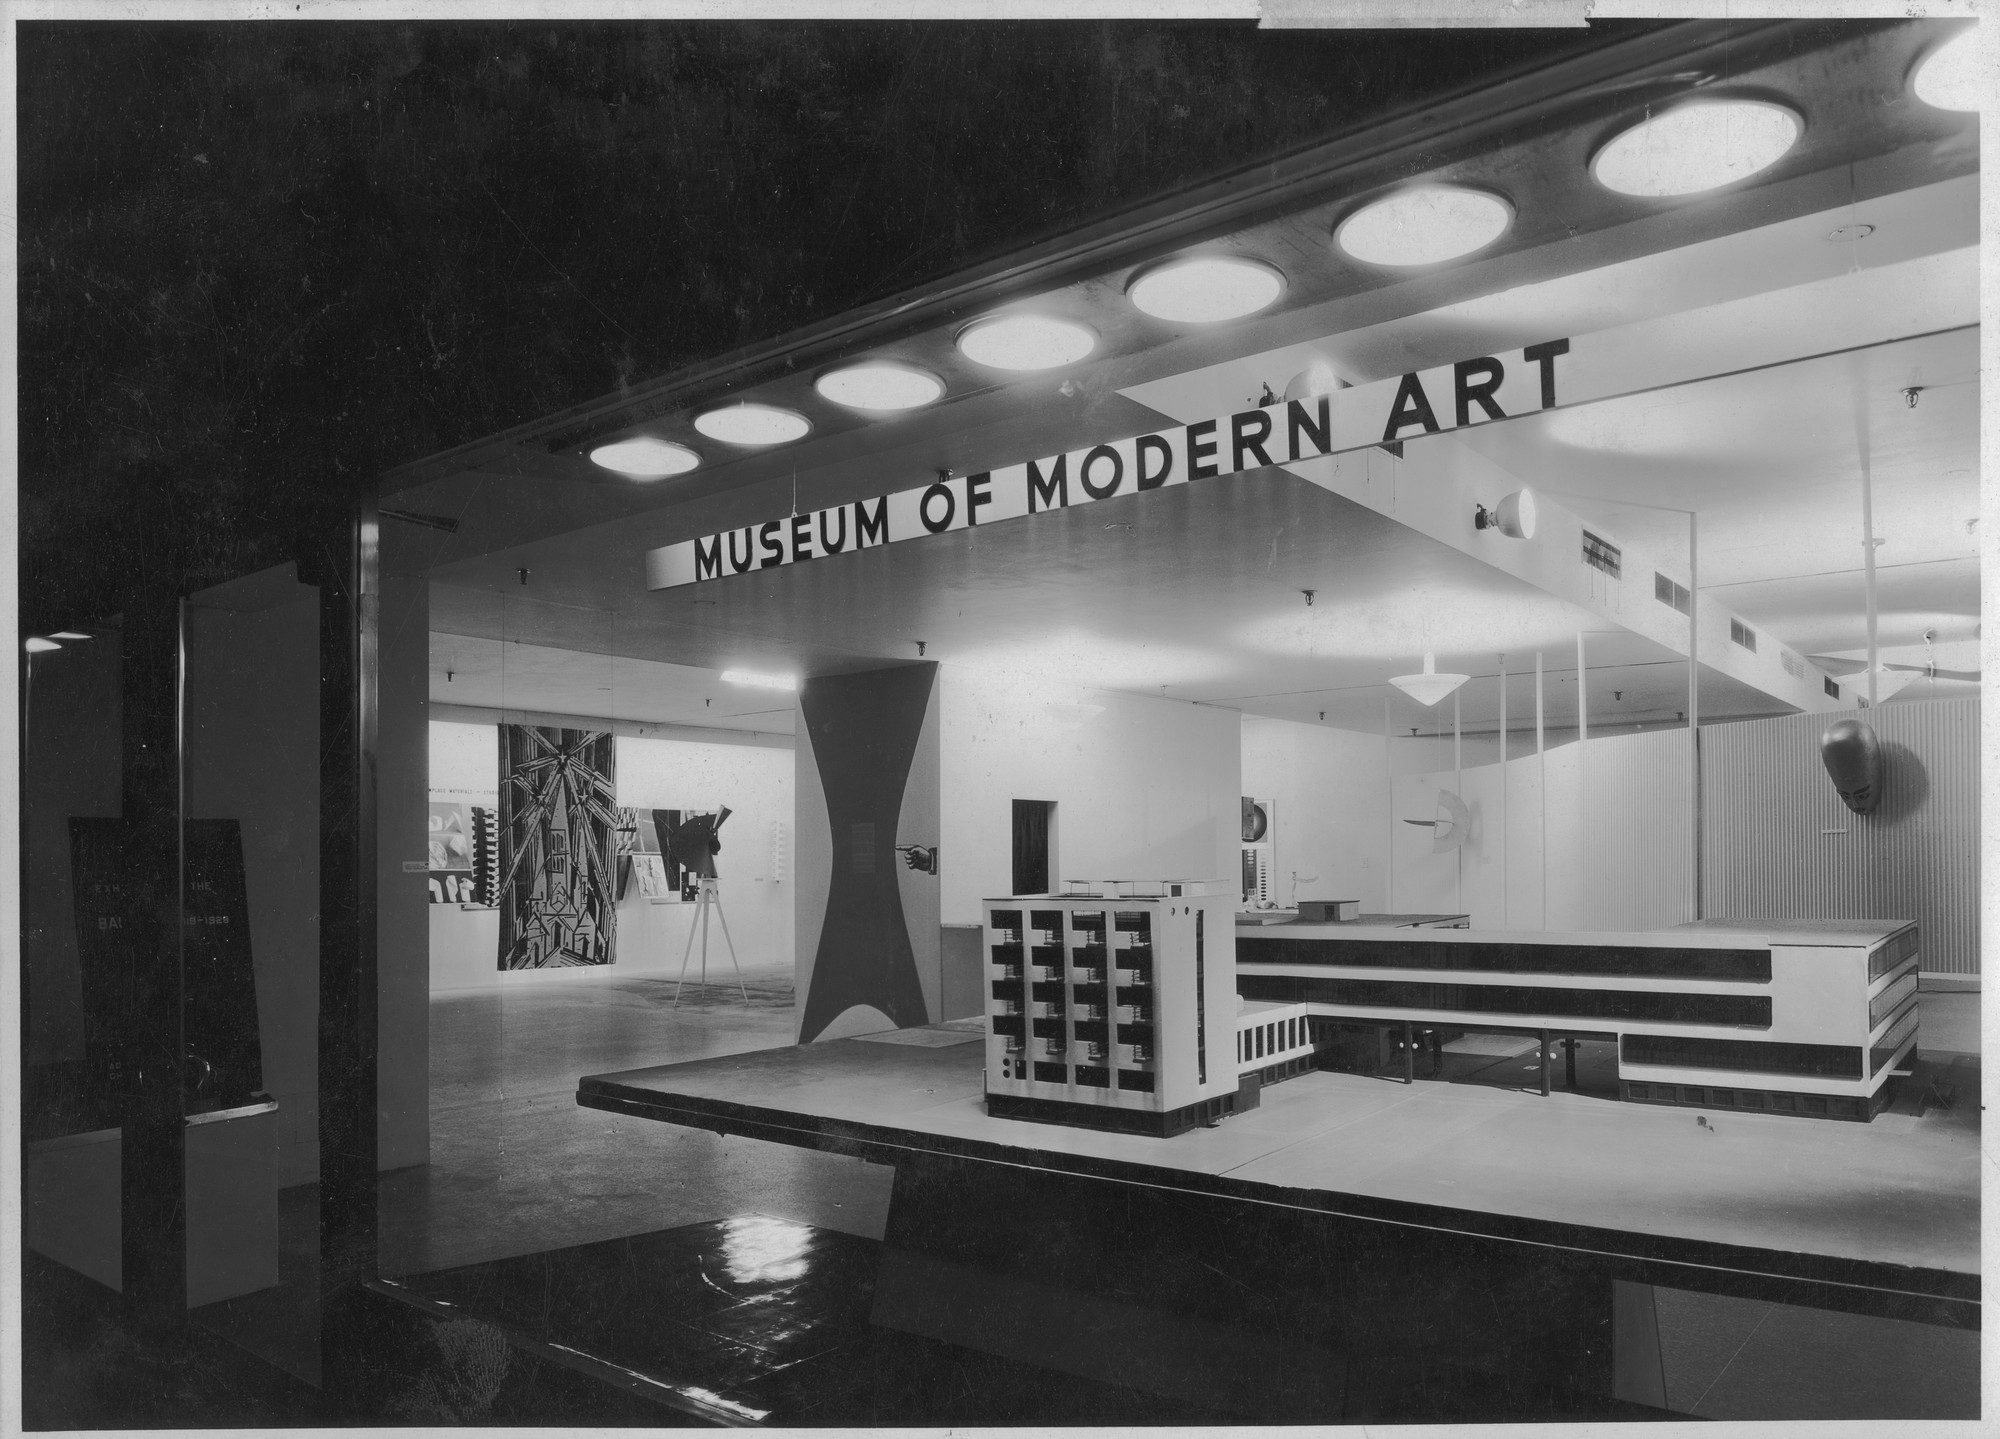 Installation view of Bauhaus: 1919–1928. The Museum of Modern Art Archives, New York